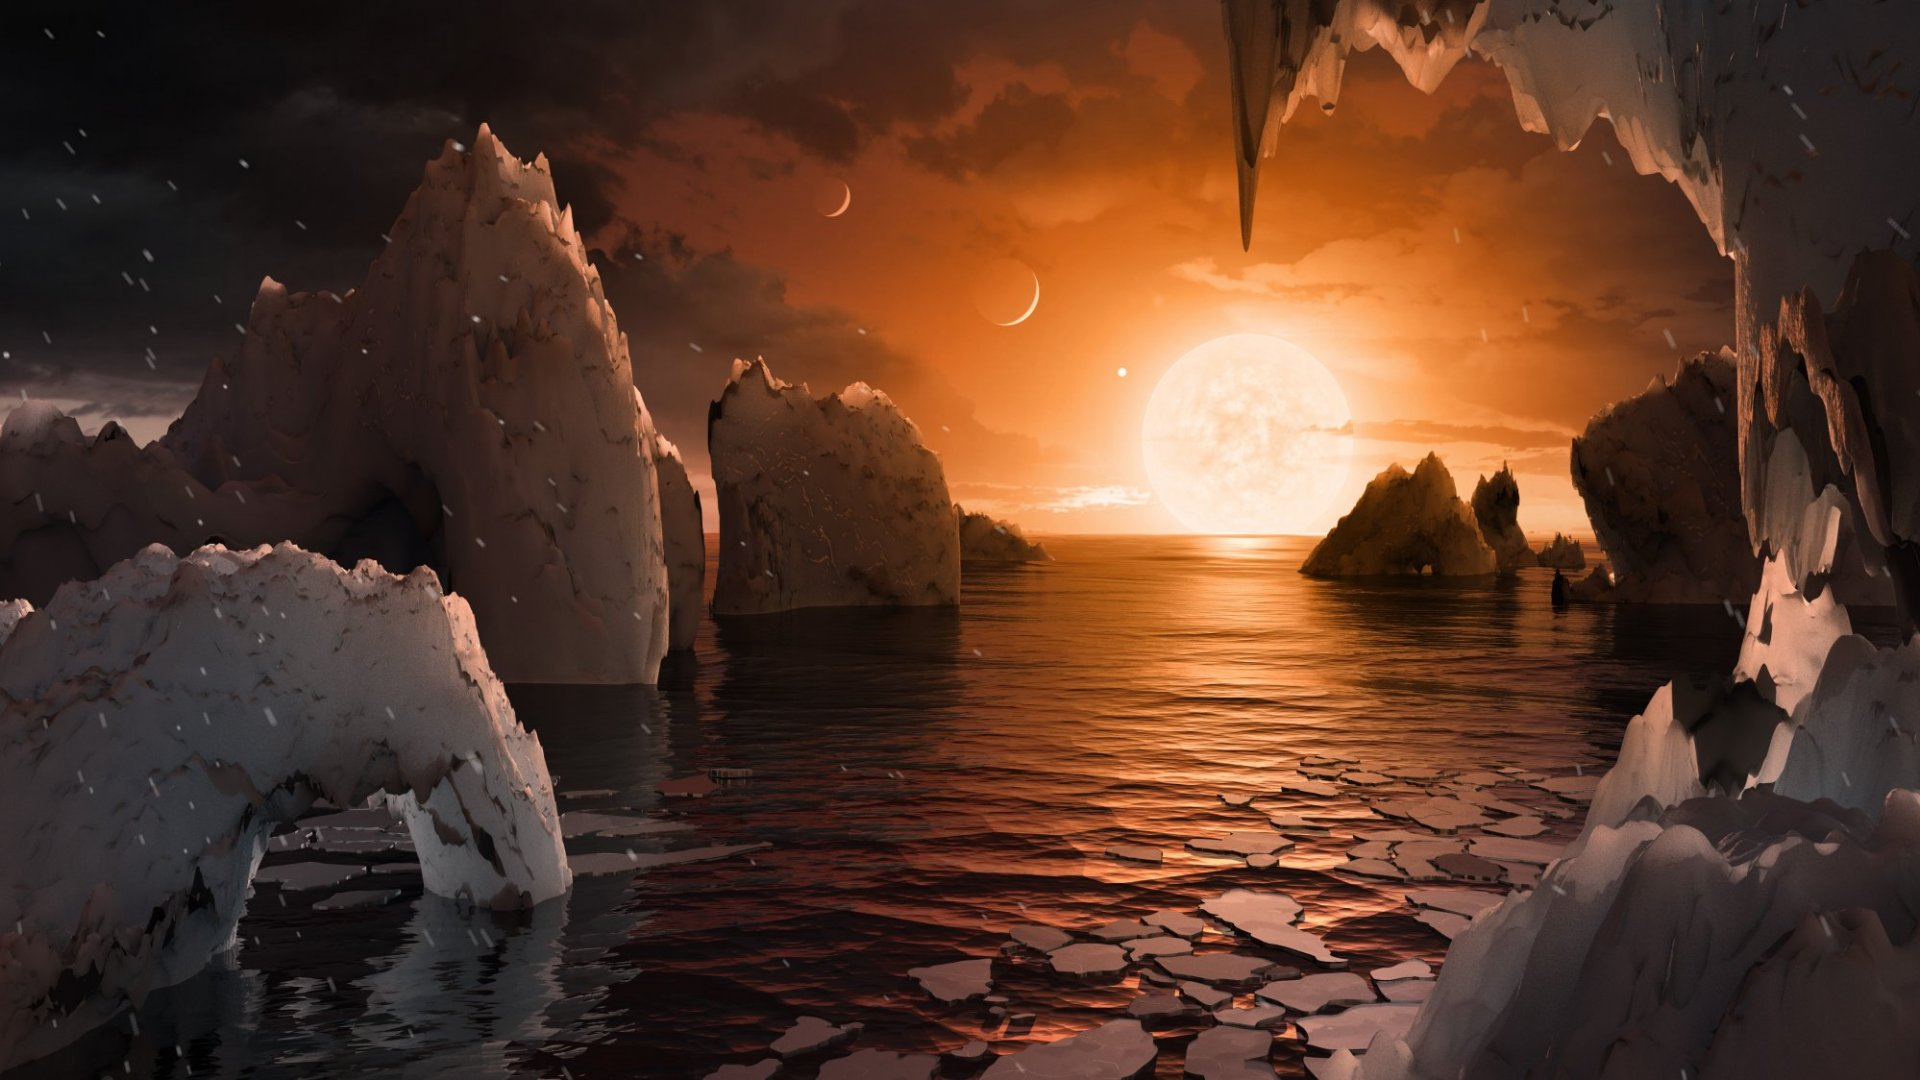 NASA Is Hiring a Full-Time 'Planetary Protection Officer' to Defend Earth From Aliens